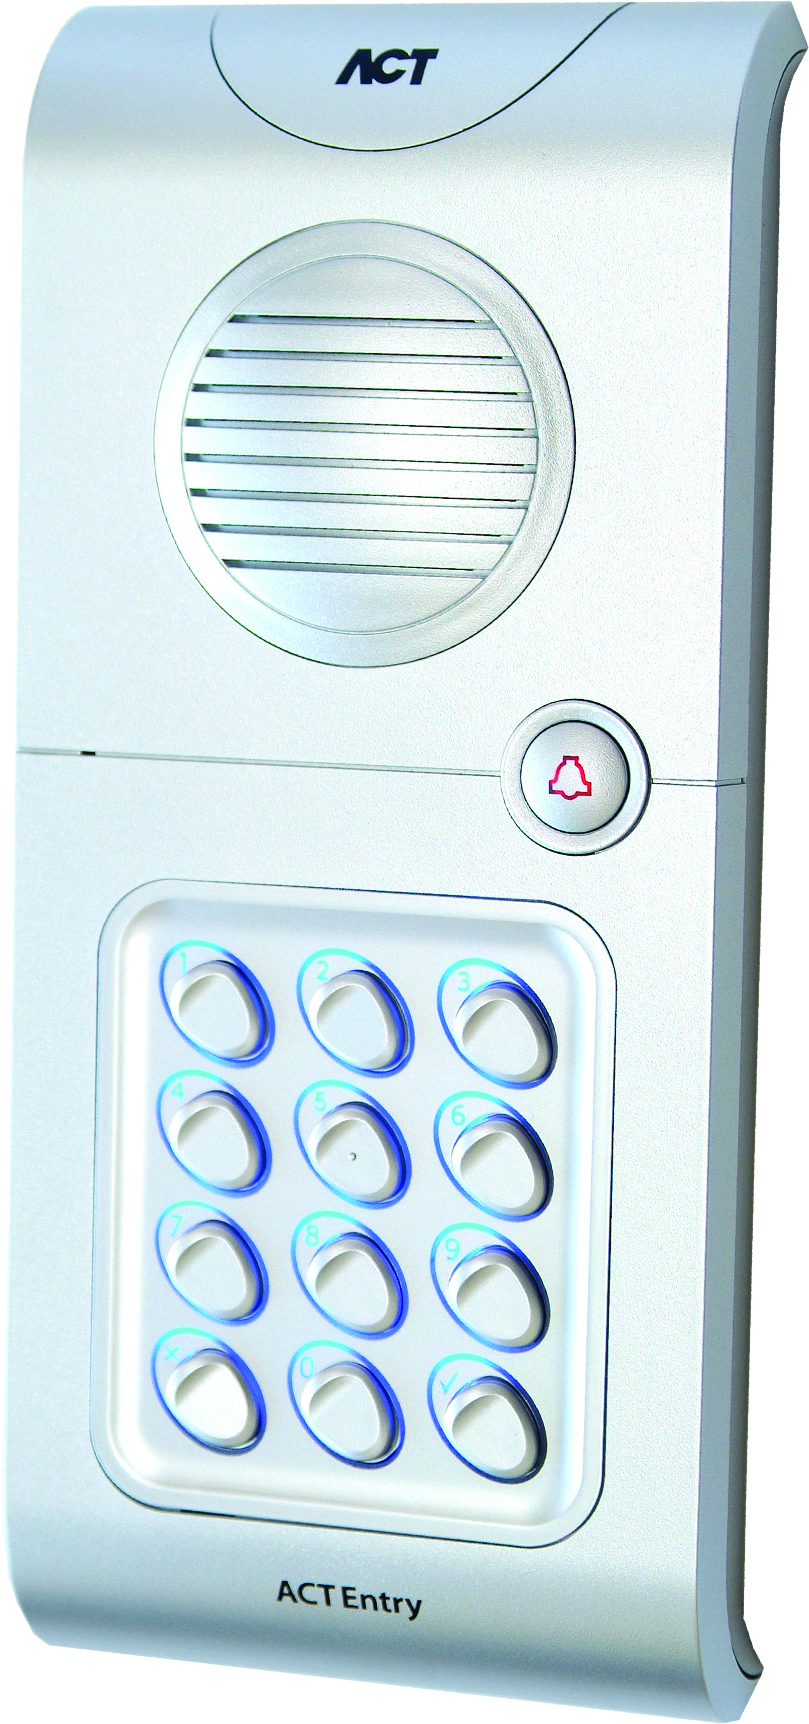 ACT5A kit Digital keypad with built-in audio entry panel and intercom